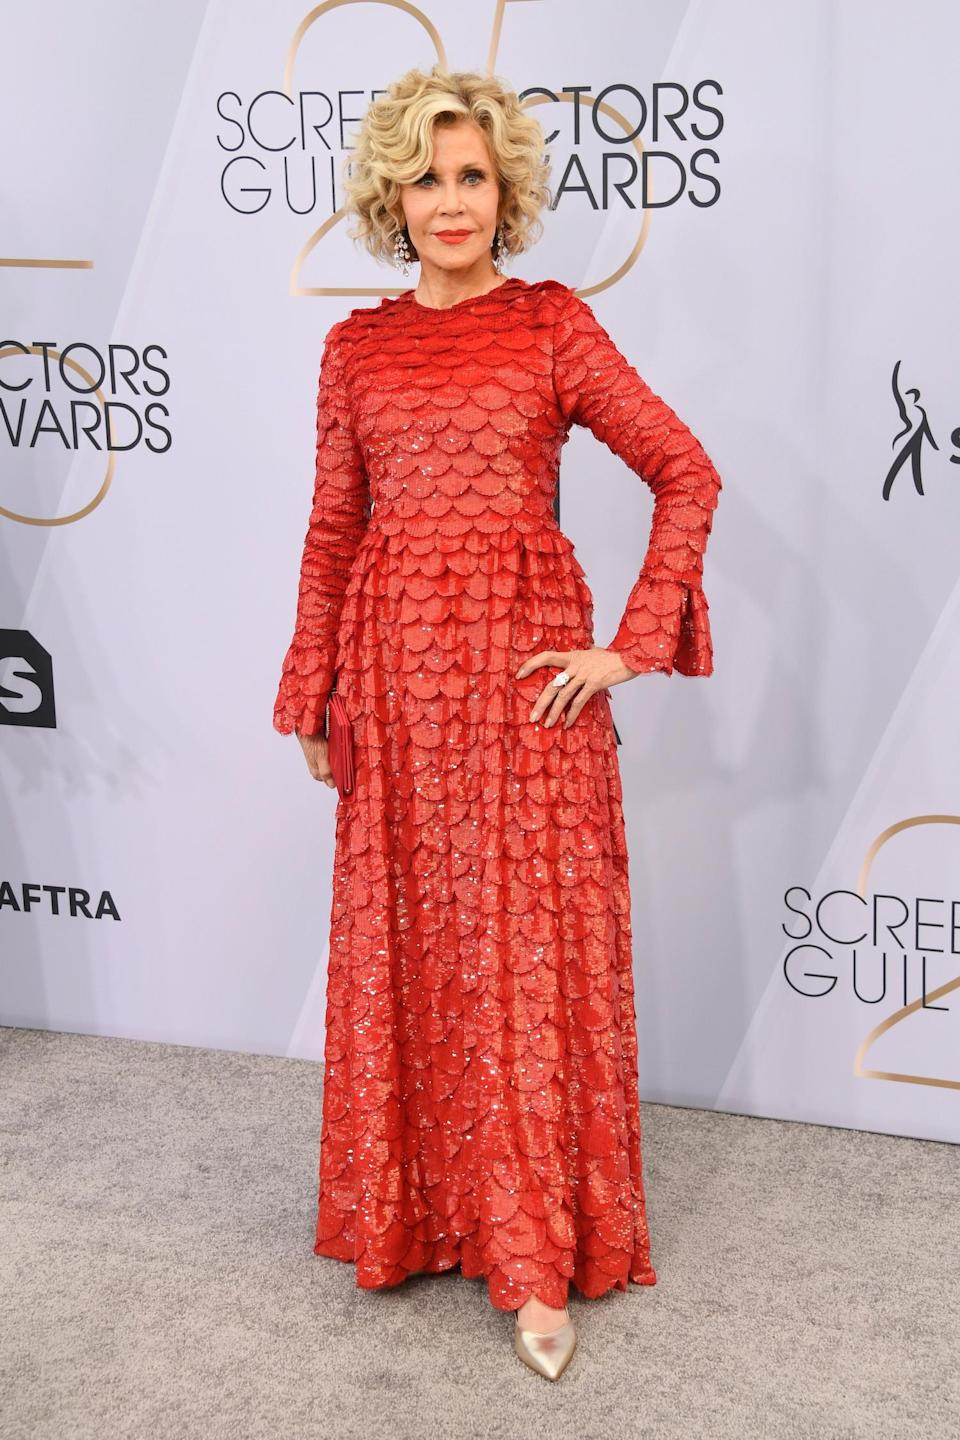 <p>Jane Fonda, in a Maison Valentino dress, at the 2019 Screen Actors Guild Awards in Los Angeles. (Photo: Getty Images) </p>